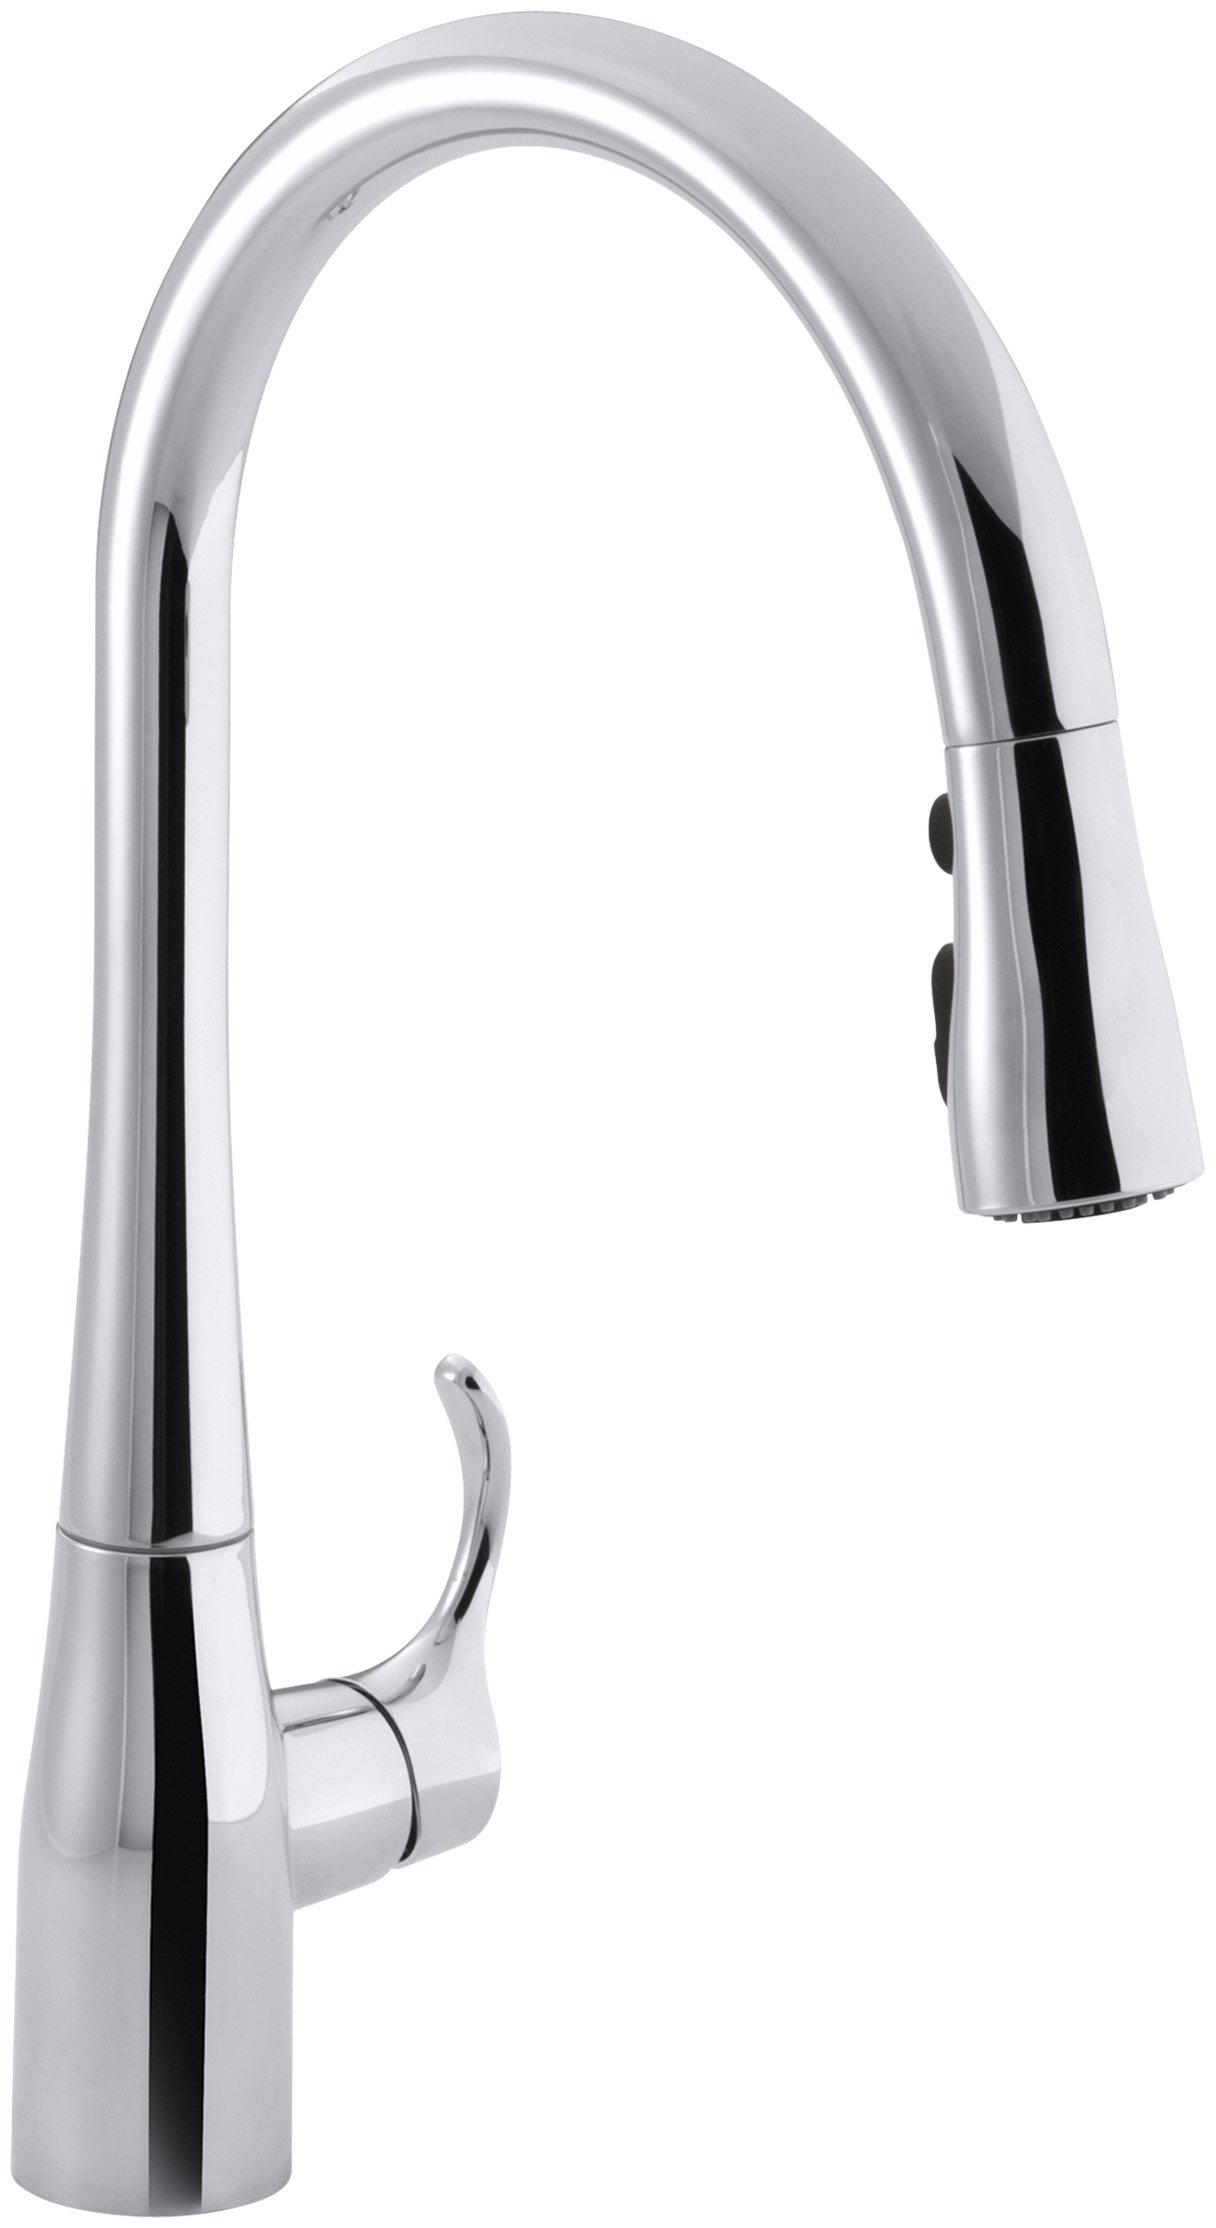 Ideas, best pull down kitchen faucet under 200 best pull down kitchen faucet under 200 best kitchen faucets 2017 1216 x 2228  .